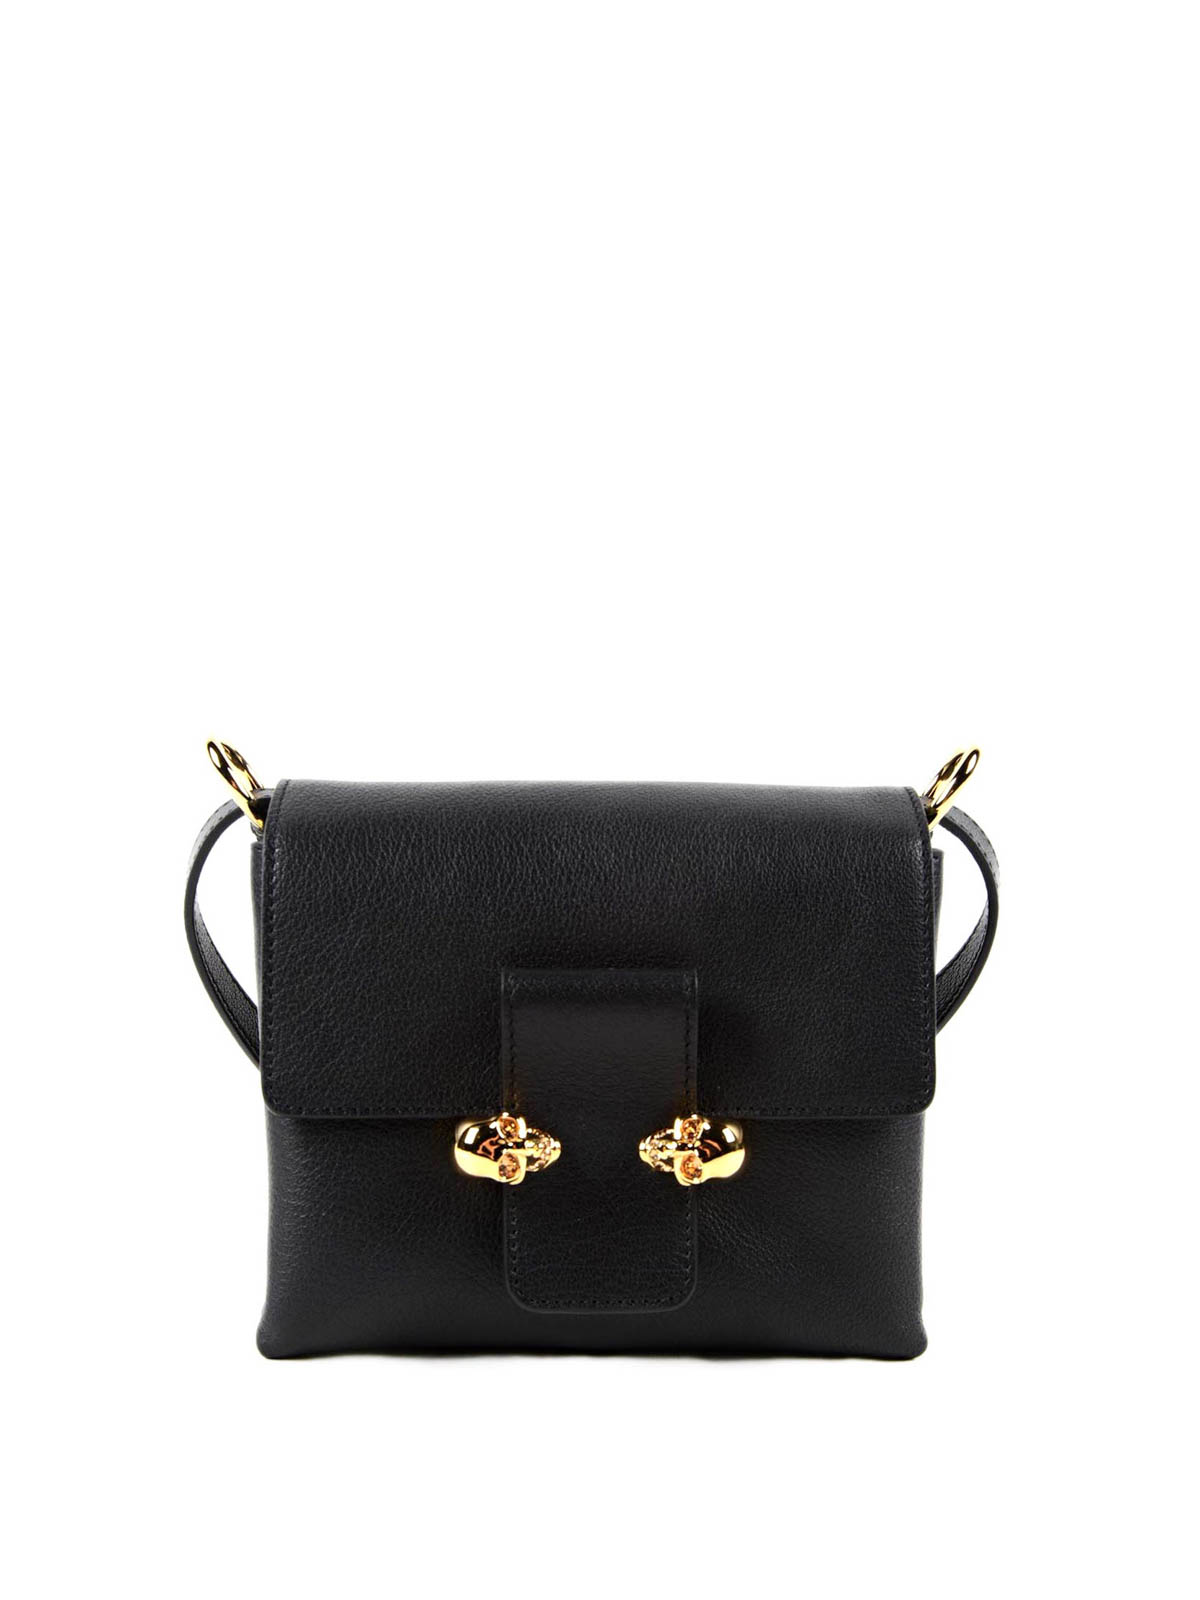 Alexander McQueen Sac Wallet Shoulder